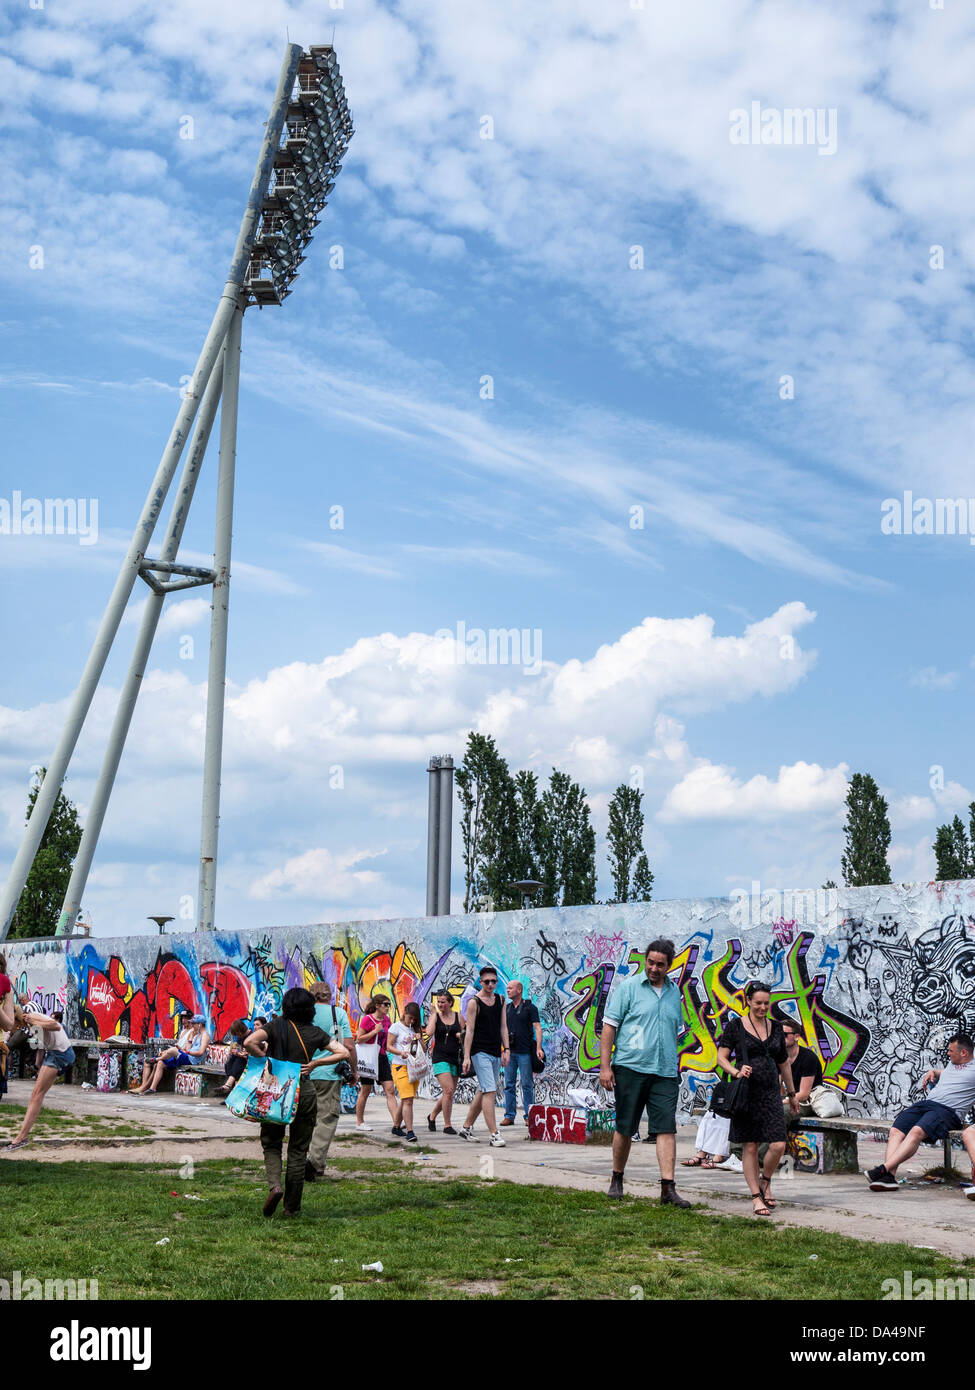 Graffiti covered Berlin wall and floodlight mast of the Friedrich Ludwig Jahn Sportpark - Mauer Park, Berlin - Stock Image